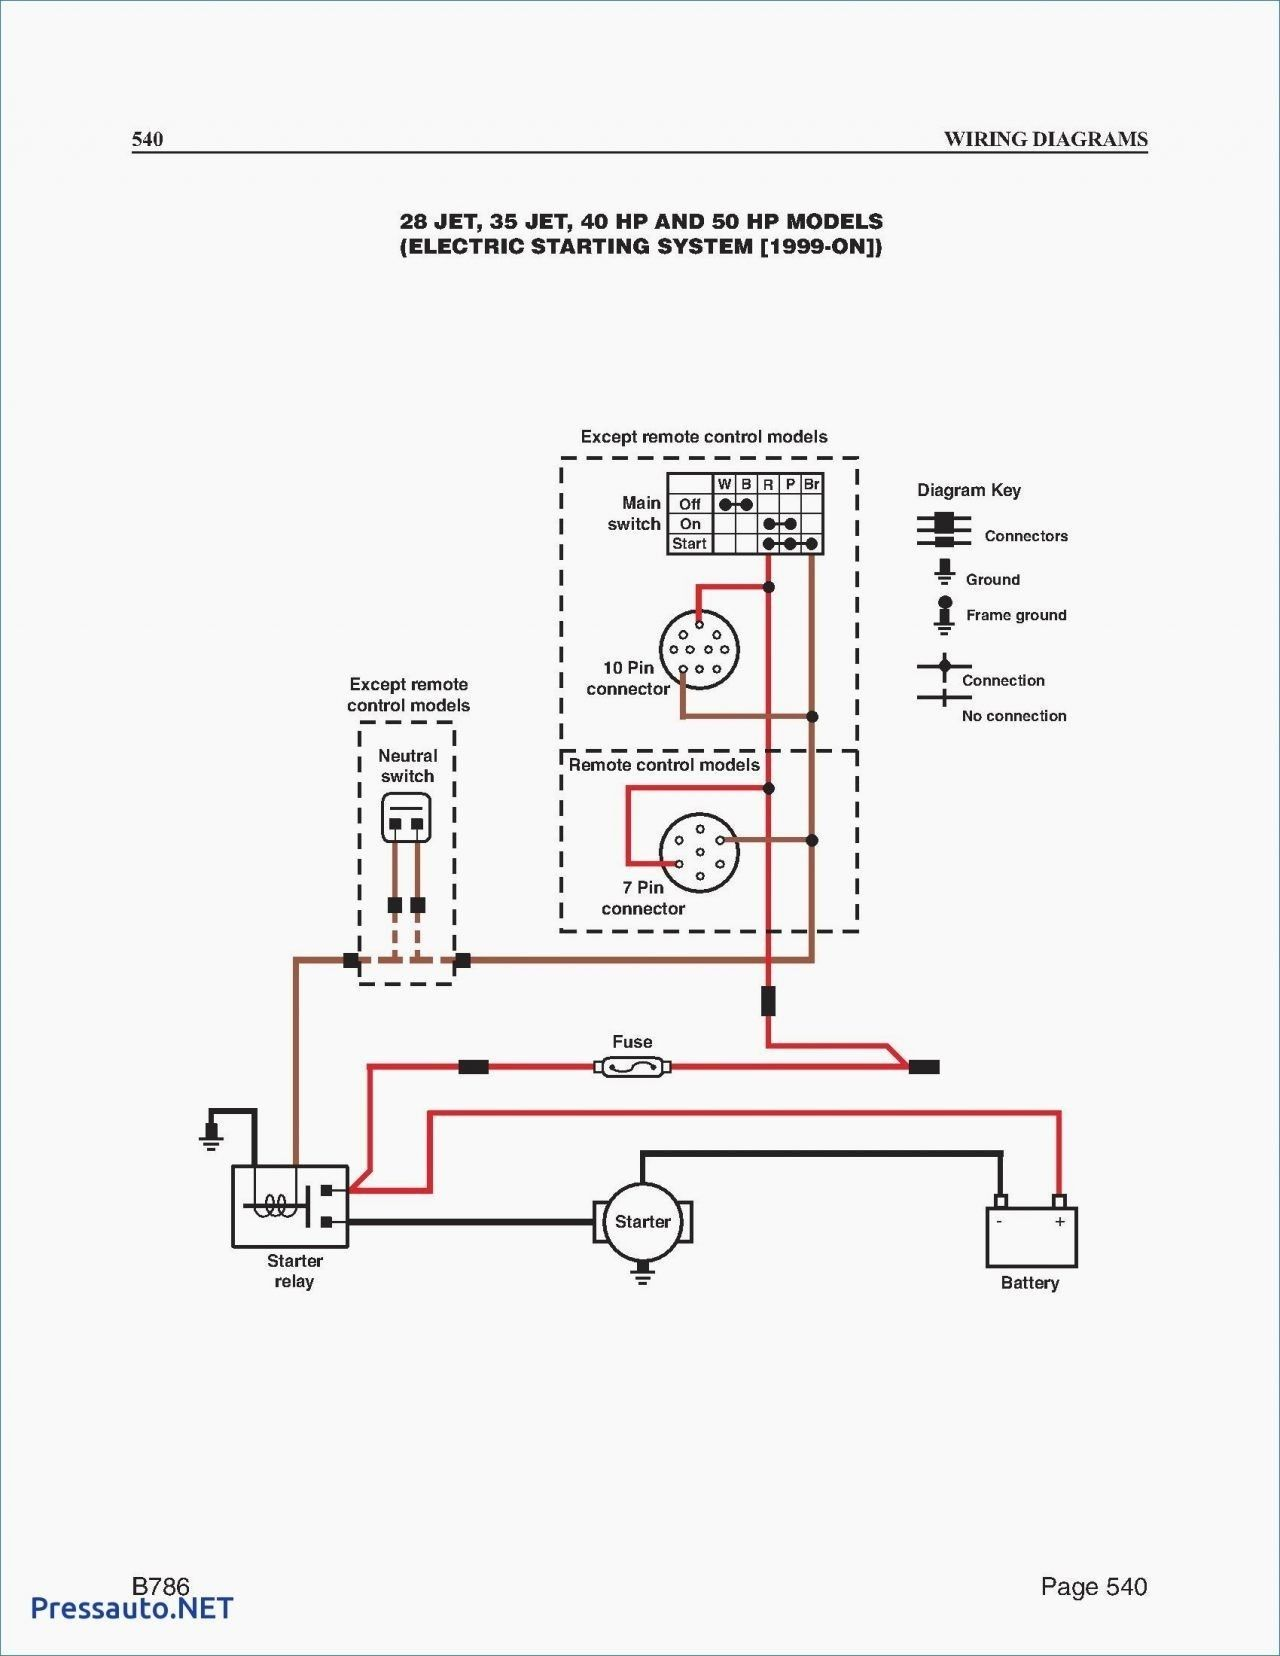 New Wiring Diagram For Emergency Key Switch